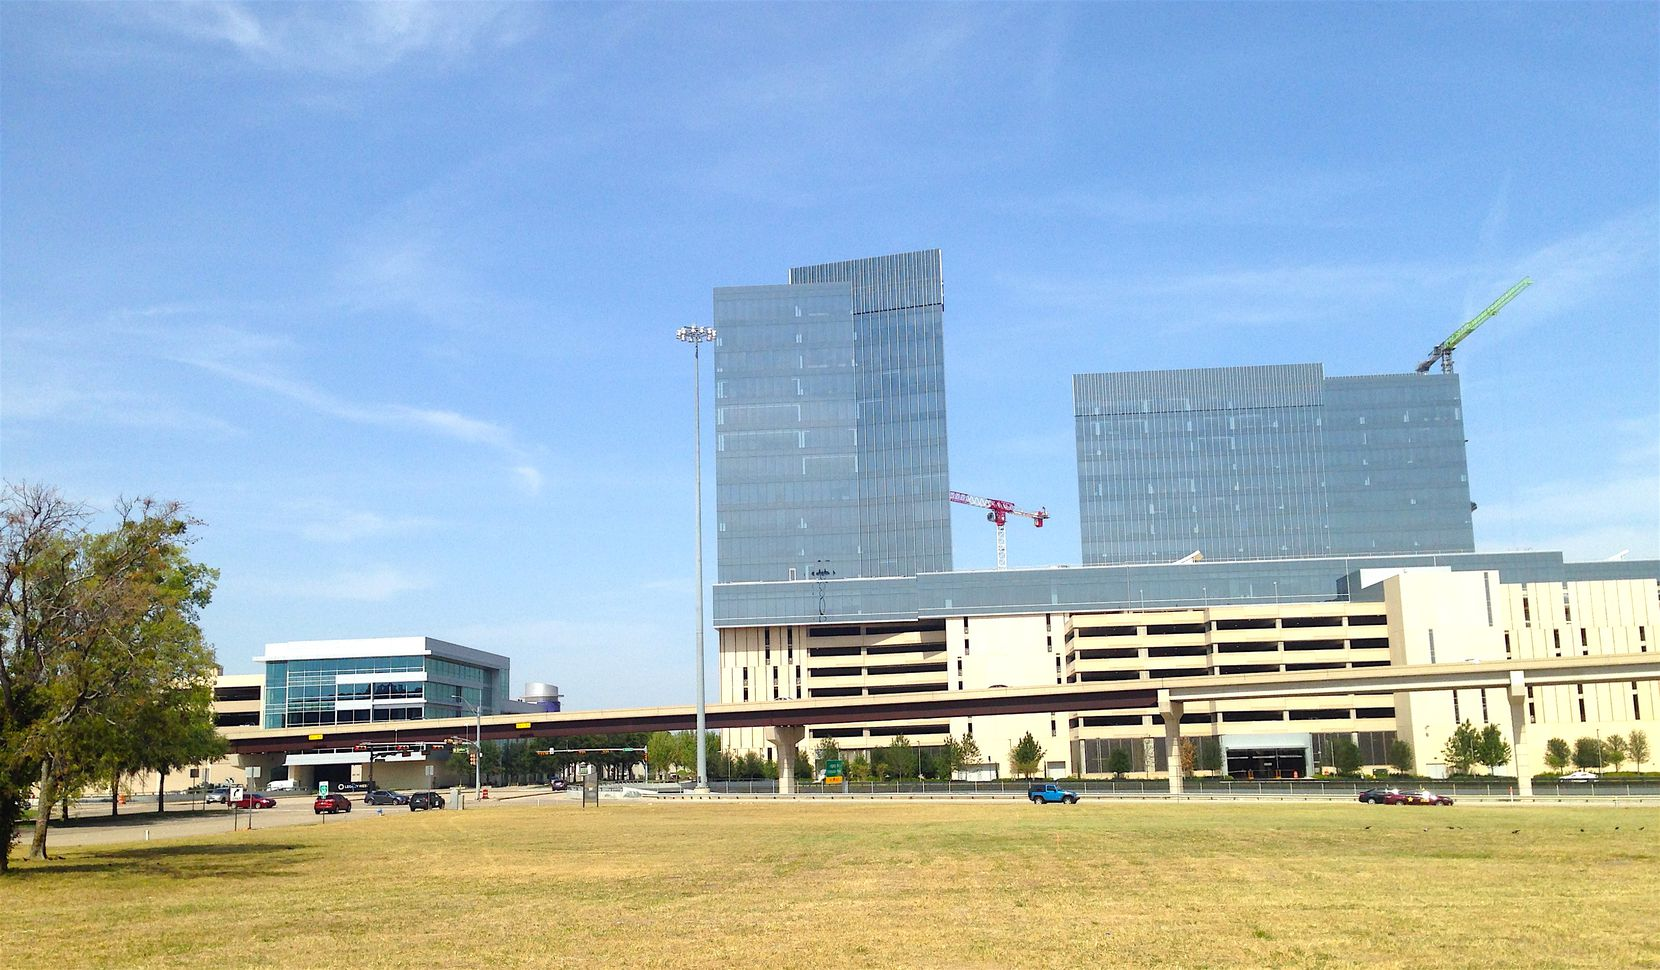 The development site is across the tollway from Liberty Mutual Insurance's Plano regional office center.